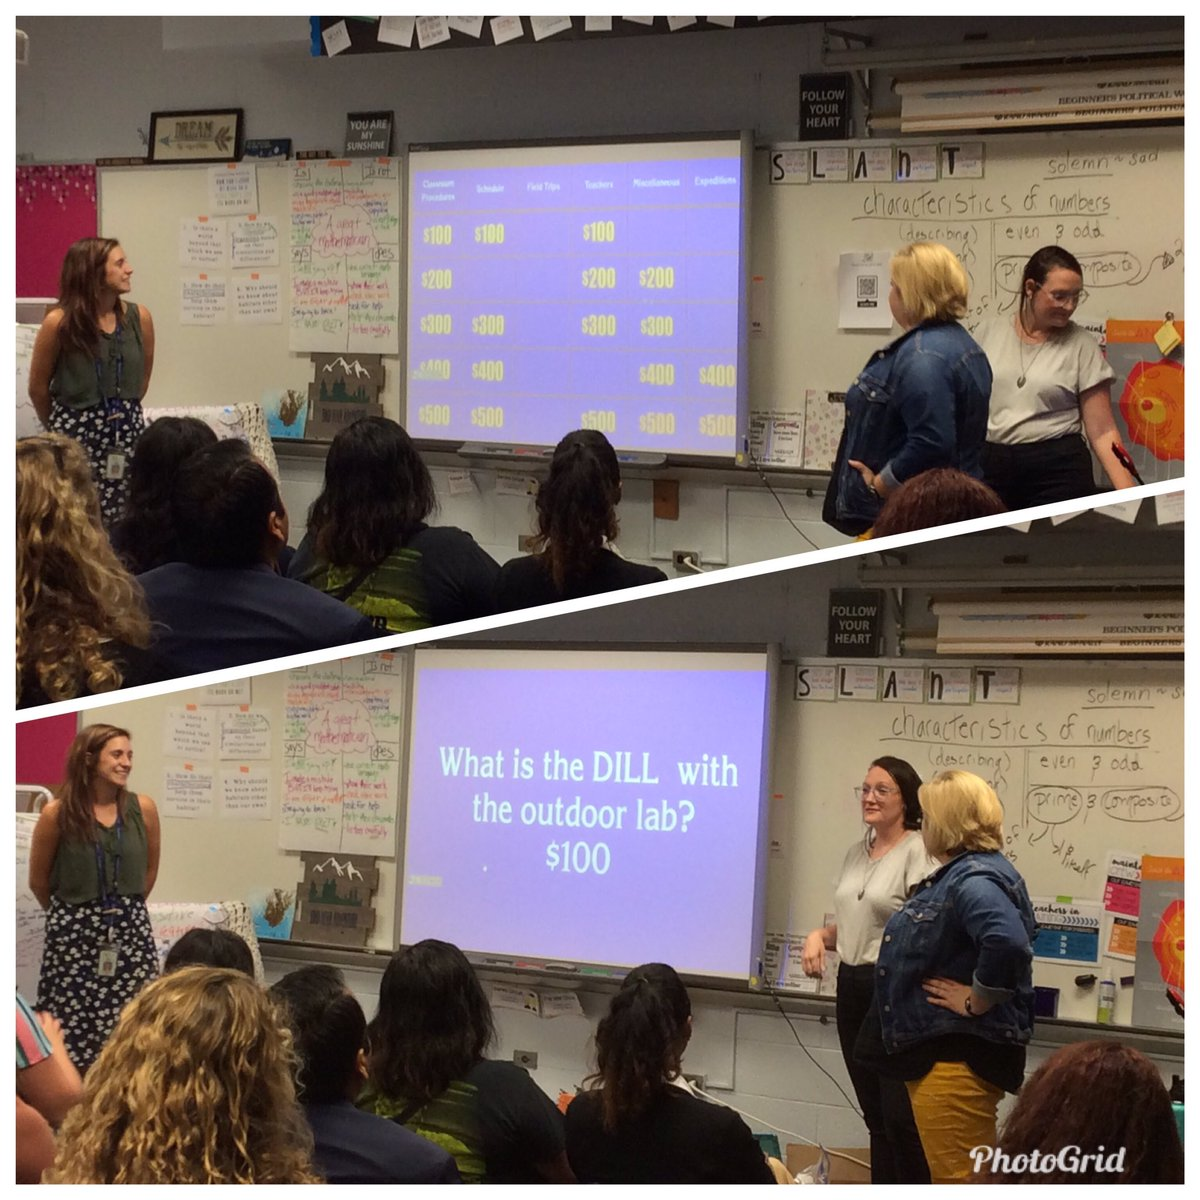 5th Grade teachers <a target='_blank' href='http://twitter.com/CampbellAPS'>@CampbellAPS</a> cleverly presented their information at Back to a School Night in Jeopardy format <a target='_blank' href='http://twitter.com/mskleif'>@mskleif</a> <a target='_blank' href='http://twitter.com/MsRoseTweets'>@MsRoseTweets</a> <a target='_blank' href='http://twitter.com/OConnor4_5'>@OConnor4_5</a> <a target='_blank' href='https://t.co/6GShhVXKiT'>https://t.co/6GShhVXKiT</a>